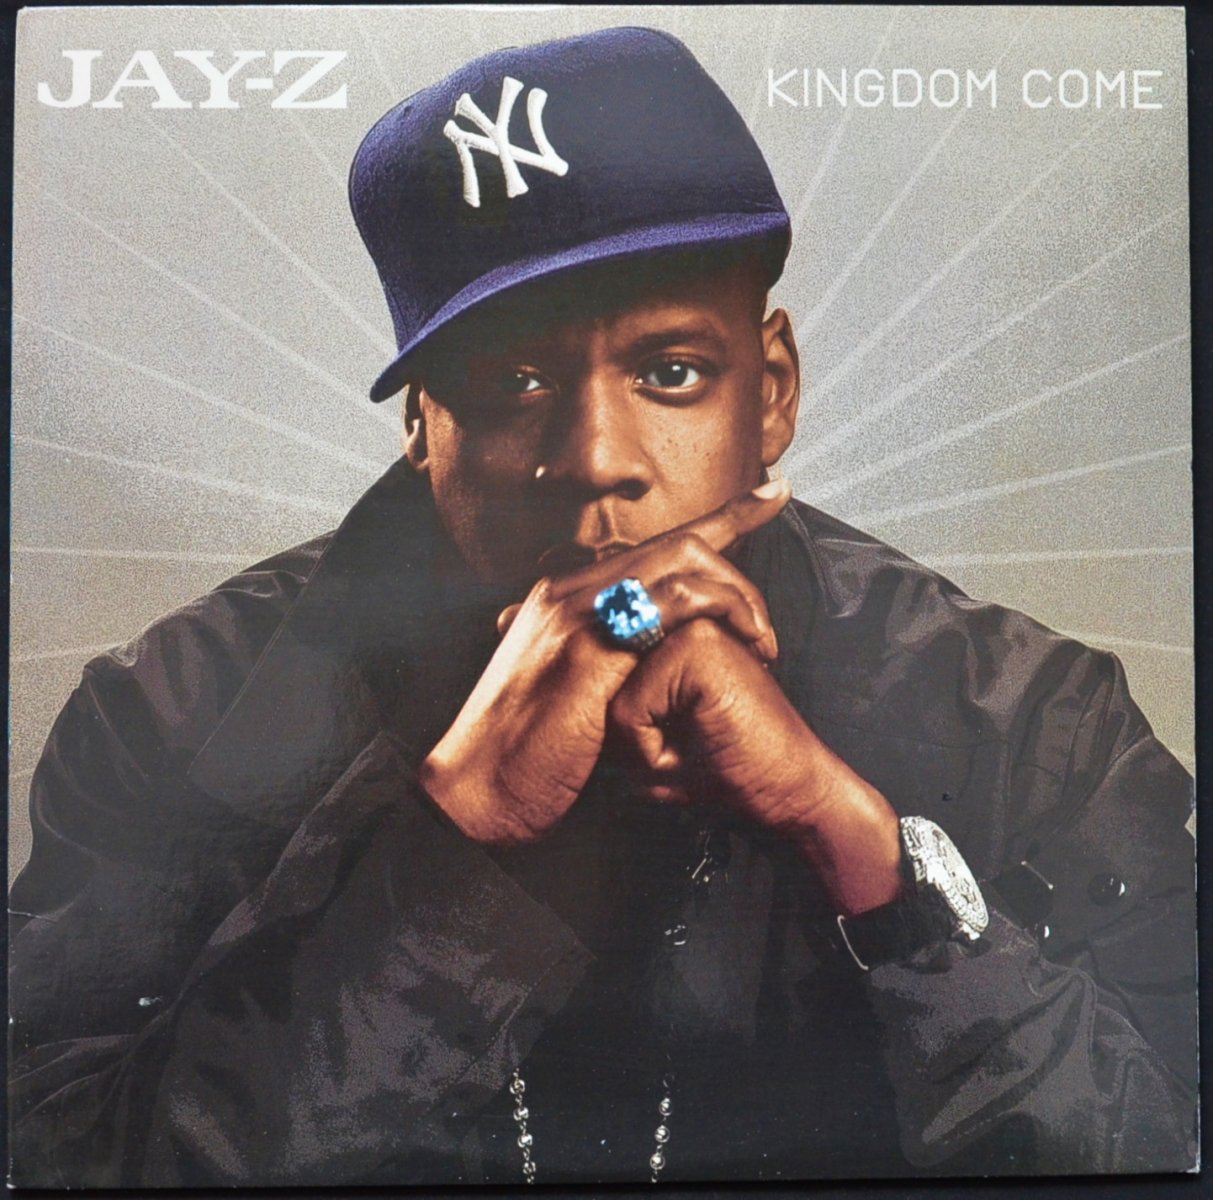 JAY-Z ‎/ KINGDOM COME / SHOW ME WHAT YOU GOT (PROD BY JUST BLAZE) (12